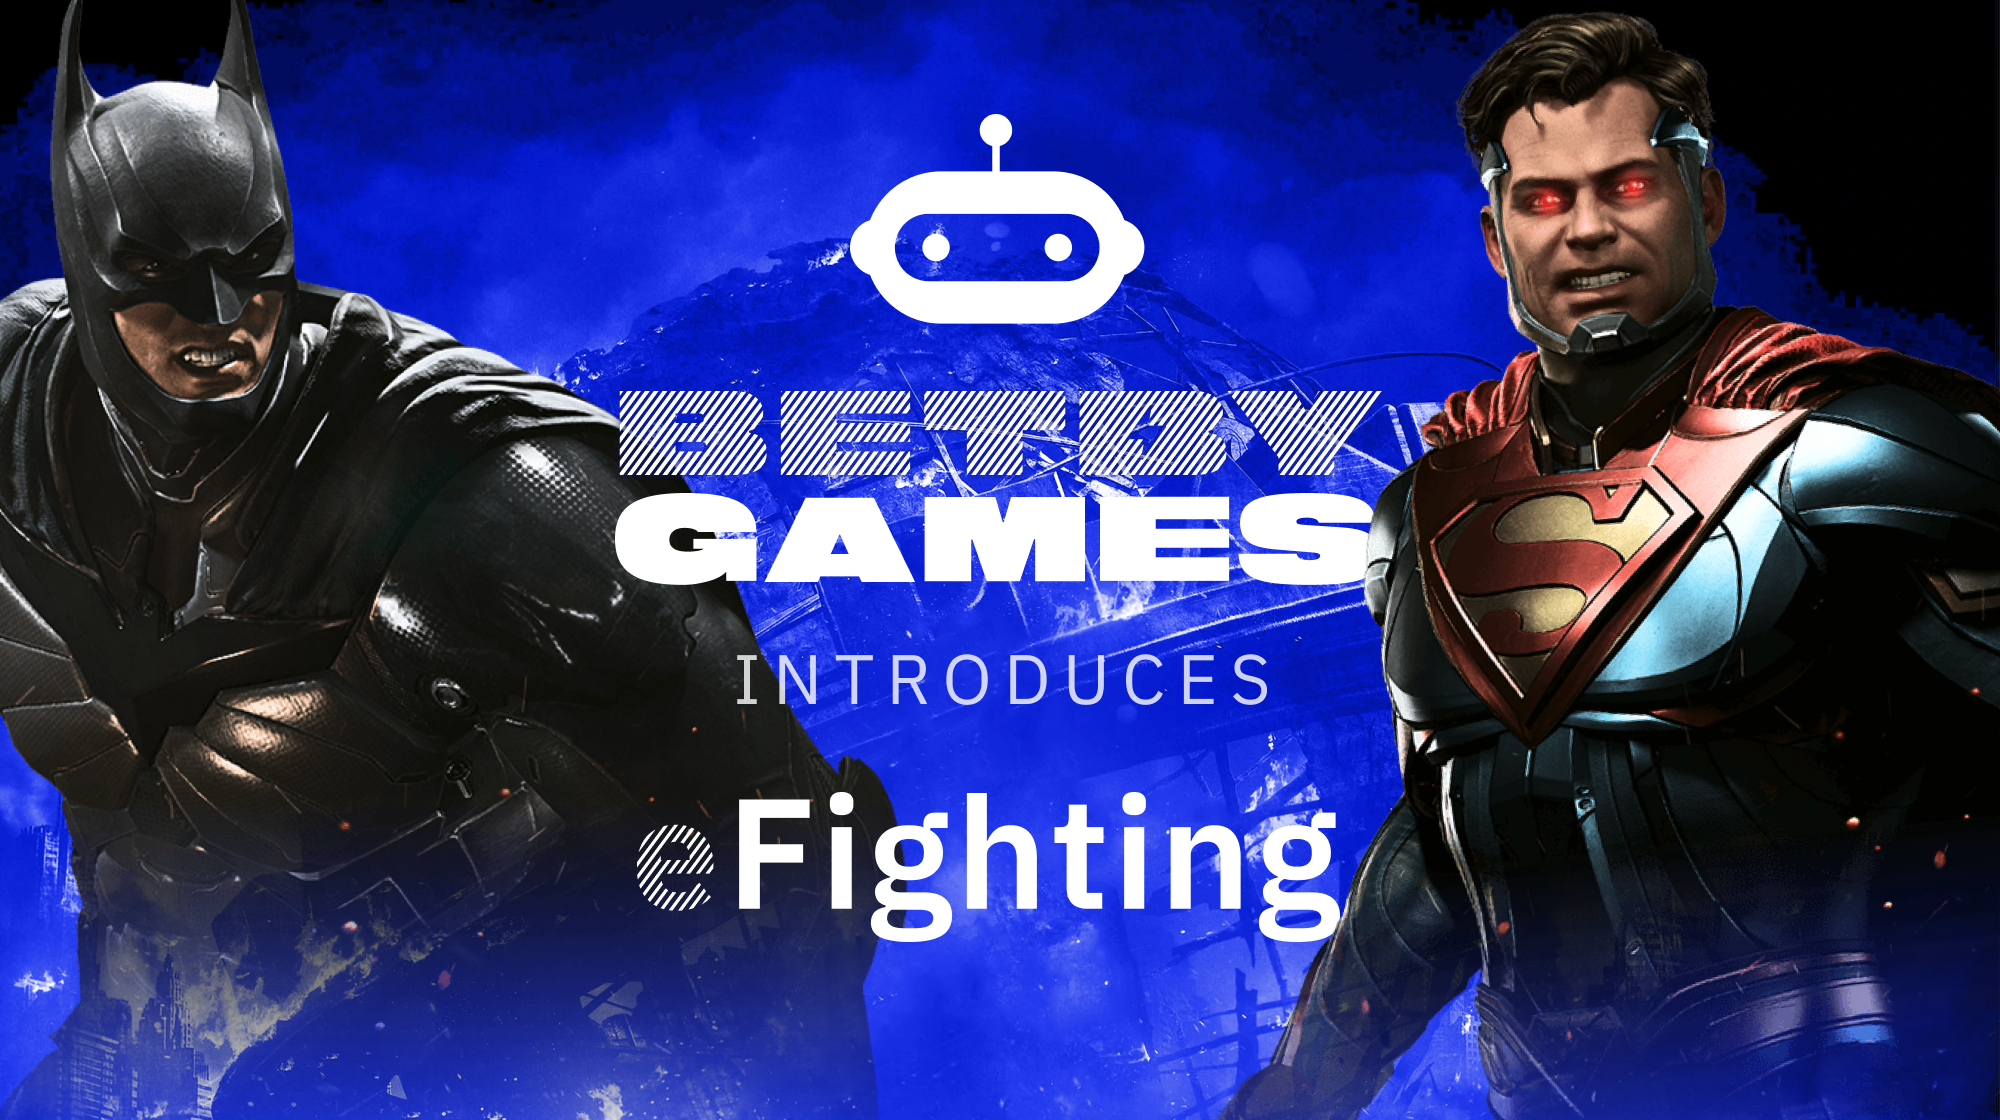 BETBY RELEASES THRILLING COMBAT EXPERIENCE WITH eFIGHTING BETBY.GAMES HIT